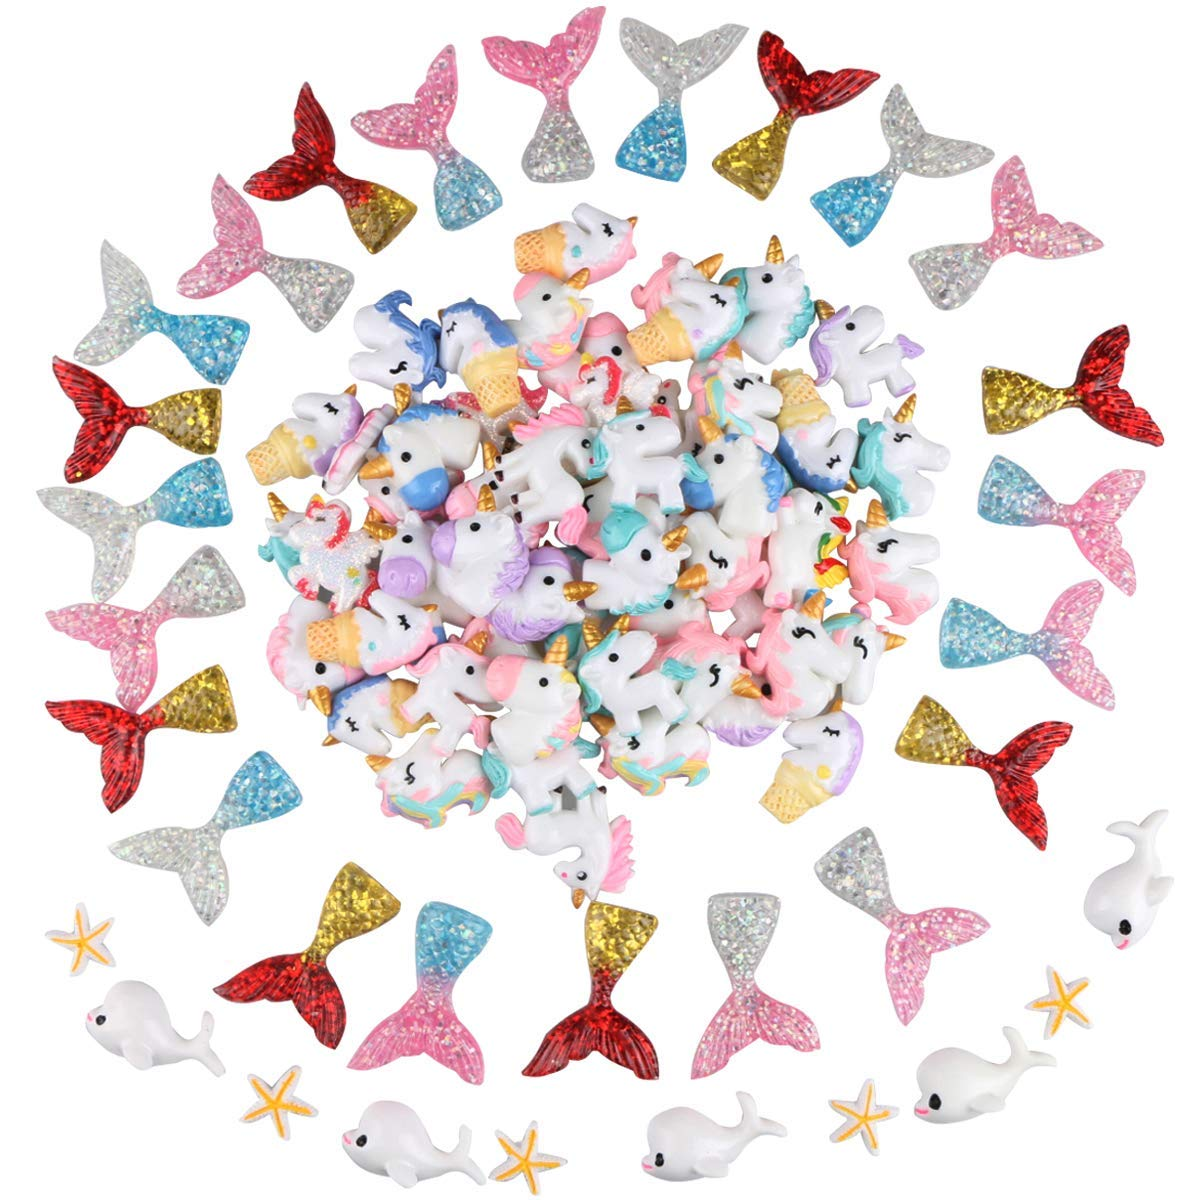 Yoodelife 110 Pcs Slime Charms Resin Flatback Slime Beads with Unicorn Mermaid Tail Dolphin Starfish Pieces for DIY Crafts, Scrapbooking Embellishments